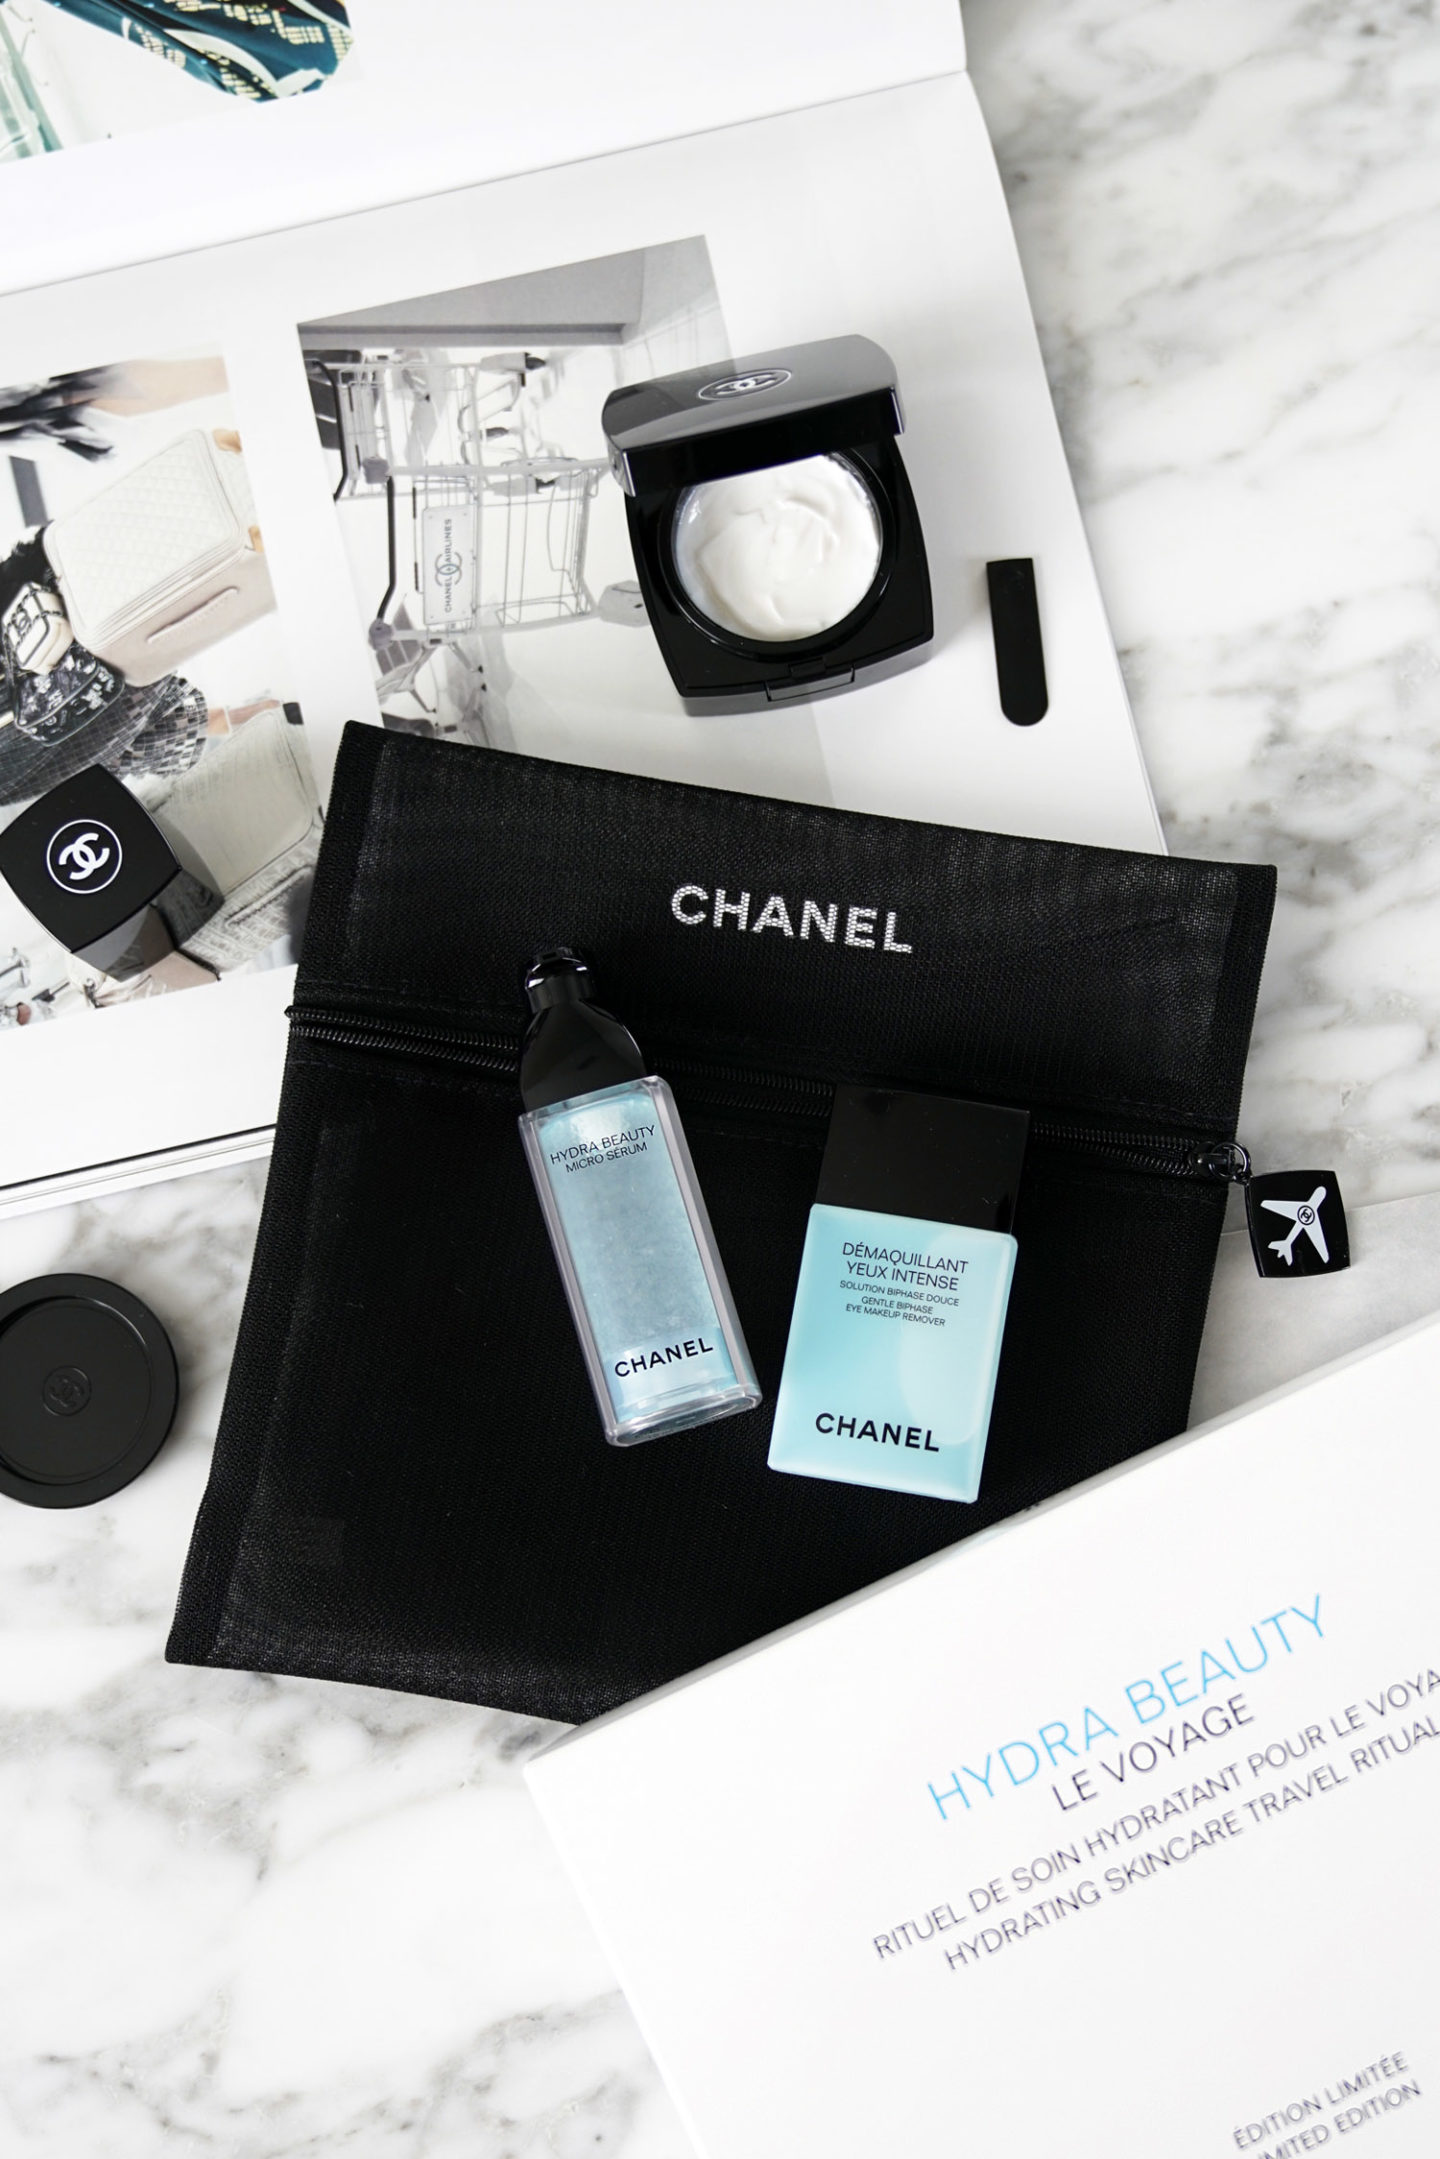 Chanel Hydra Beauty Le Voyage Set Review | Le look book beauté